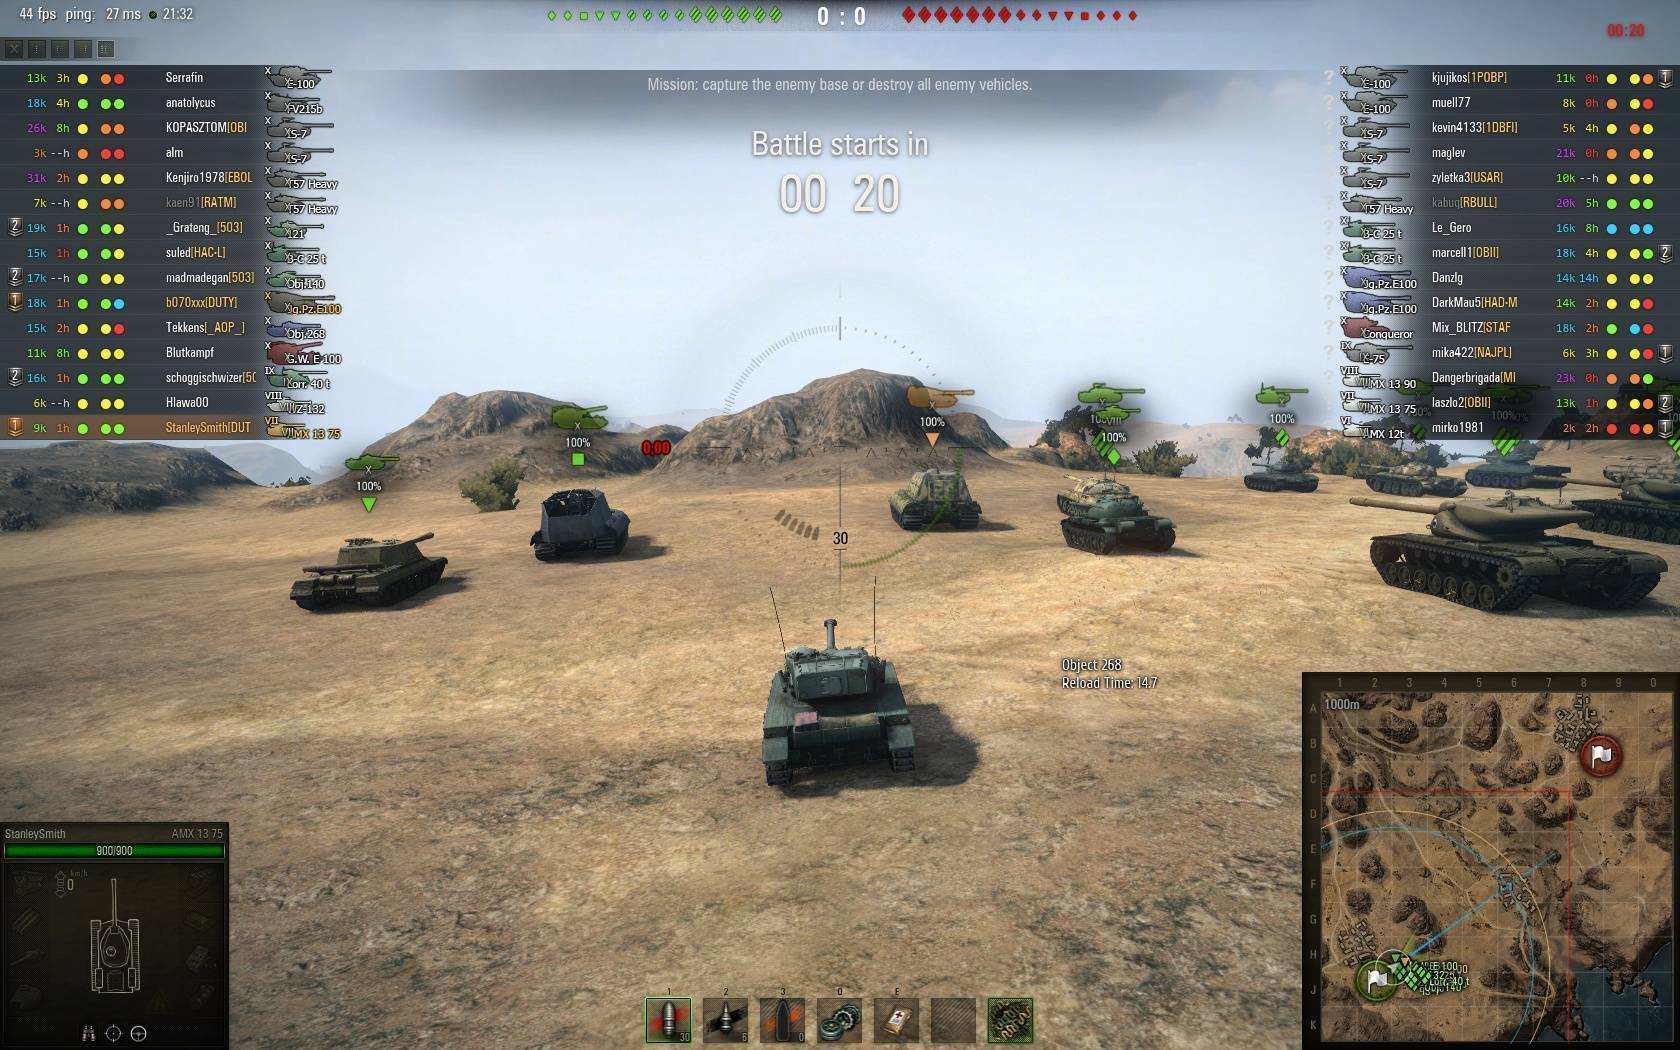 amx 13 75 matchmaking Matchmaker we recognize that the matchmaker has been one of the biggest sources of player frustration in the game over the years, you reported frequent cases of uneven team makeups, map gameplay-wise, the amx 13 75 can be played as an invisible passive scout or an active scout/flanker.